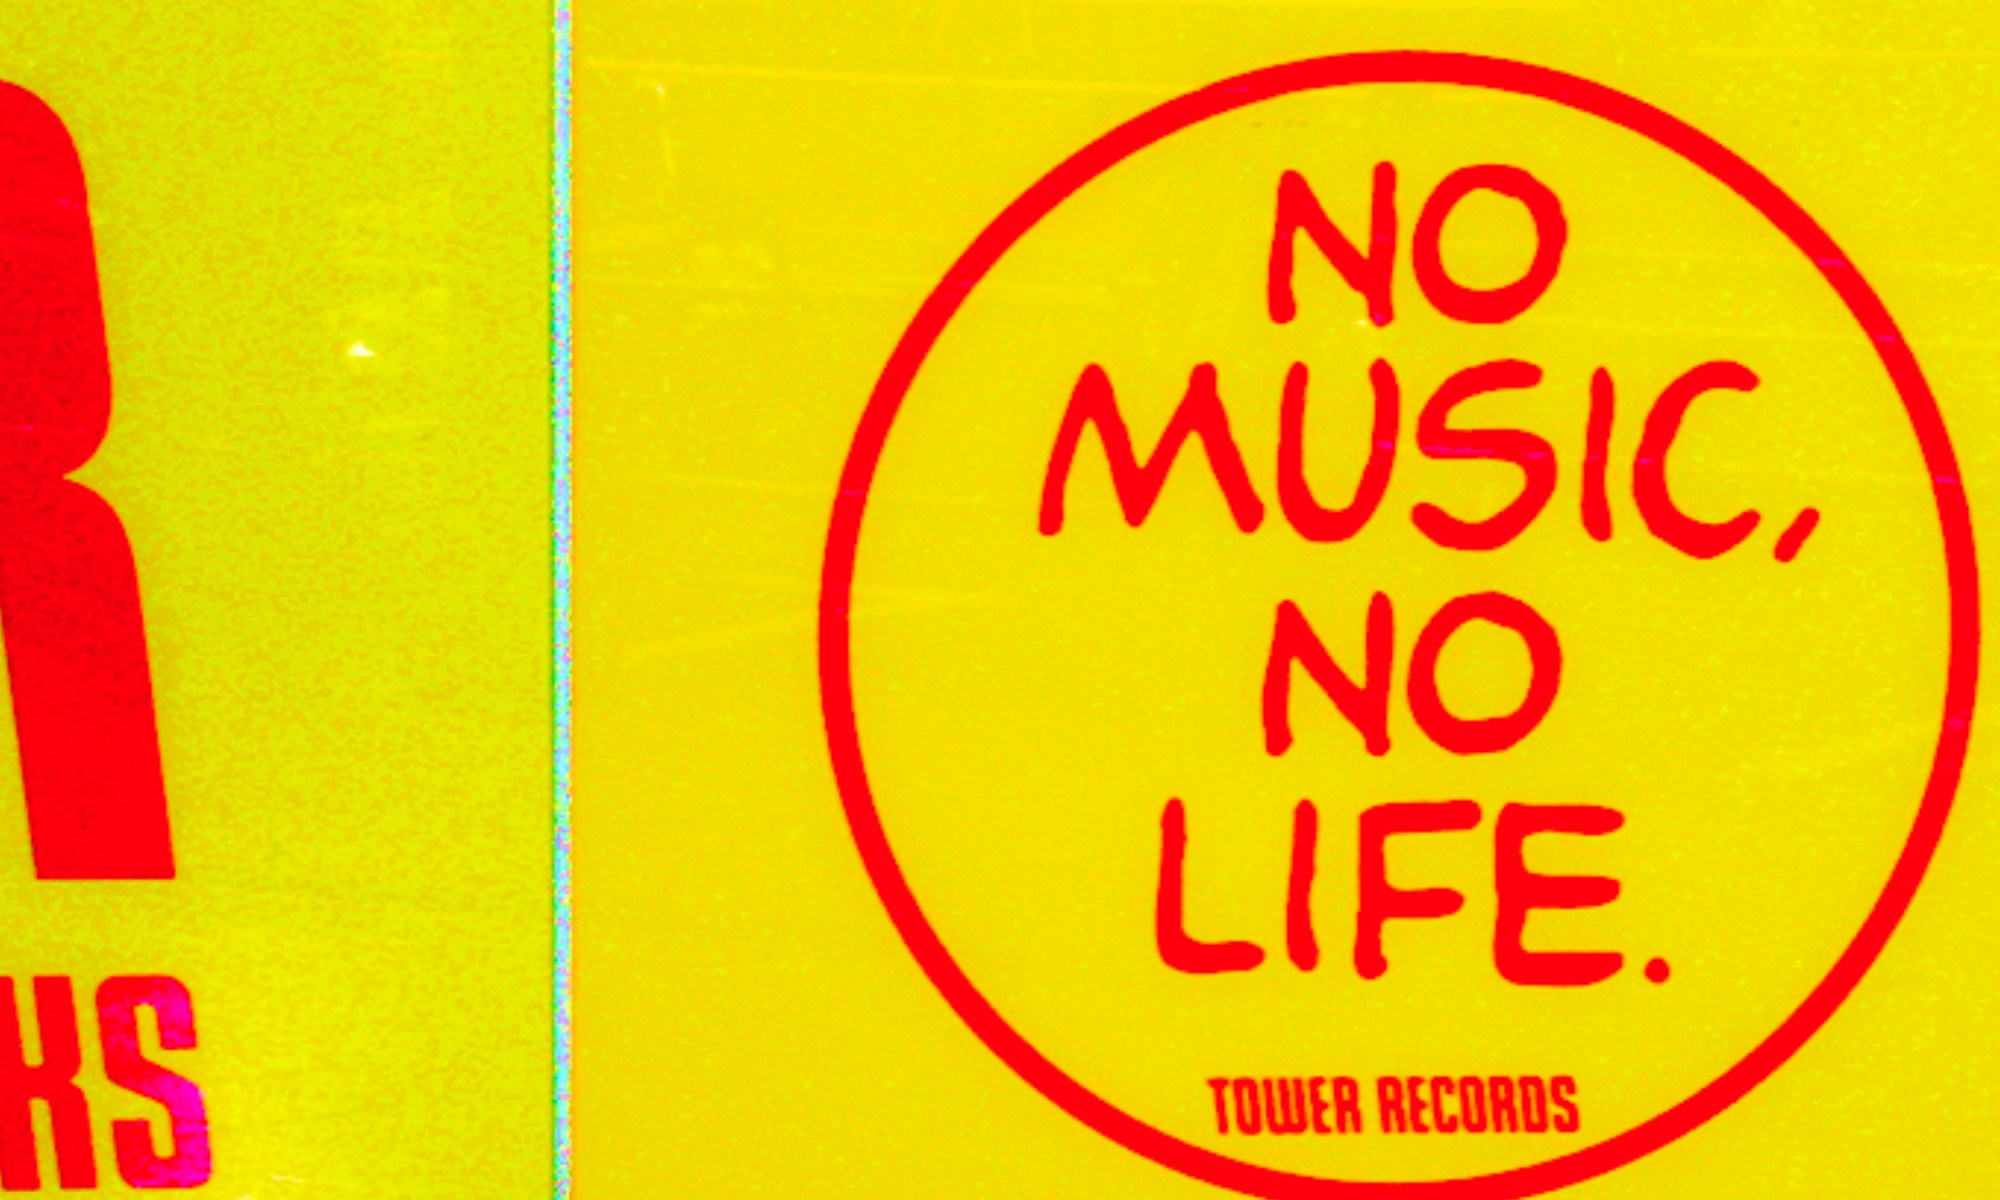 NTT Docomo acquisitions: Tower Records - No music, no life!